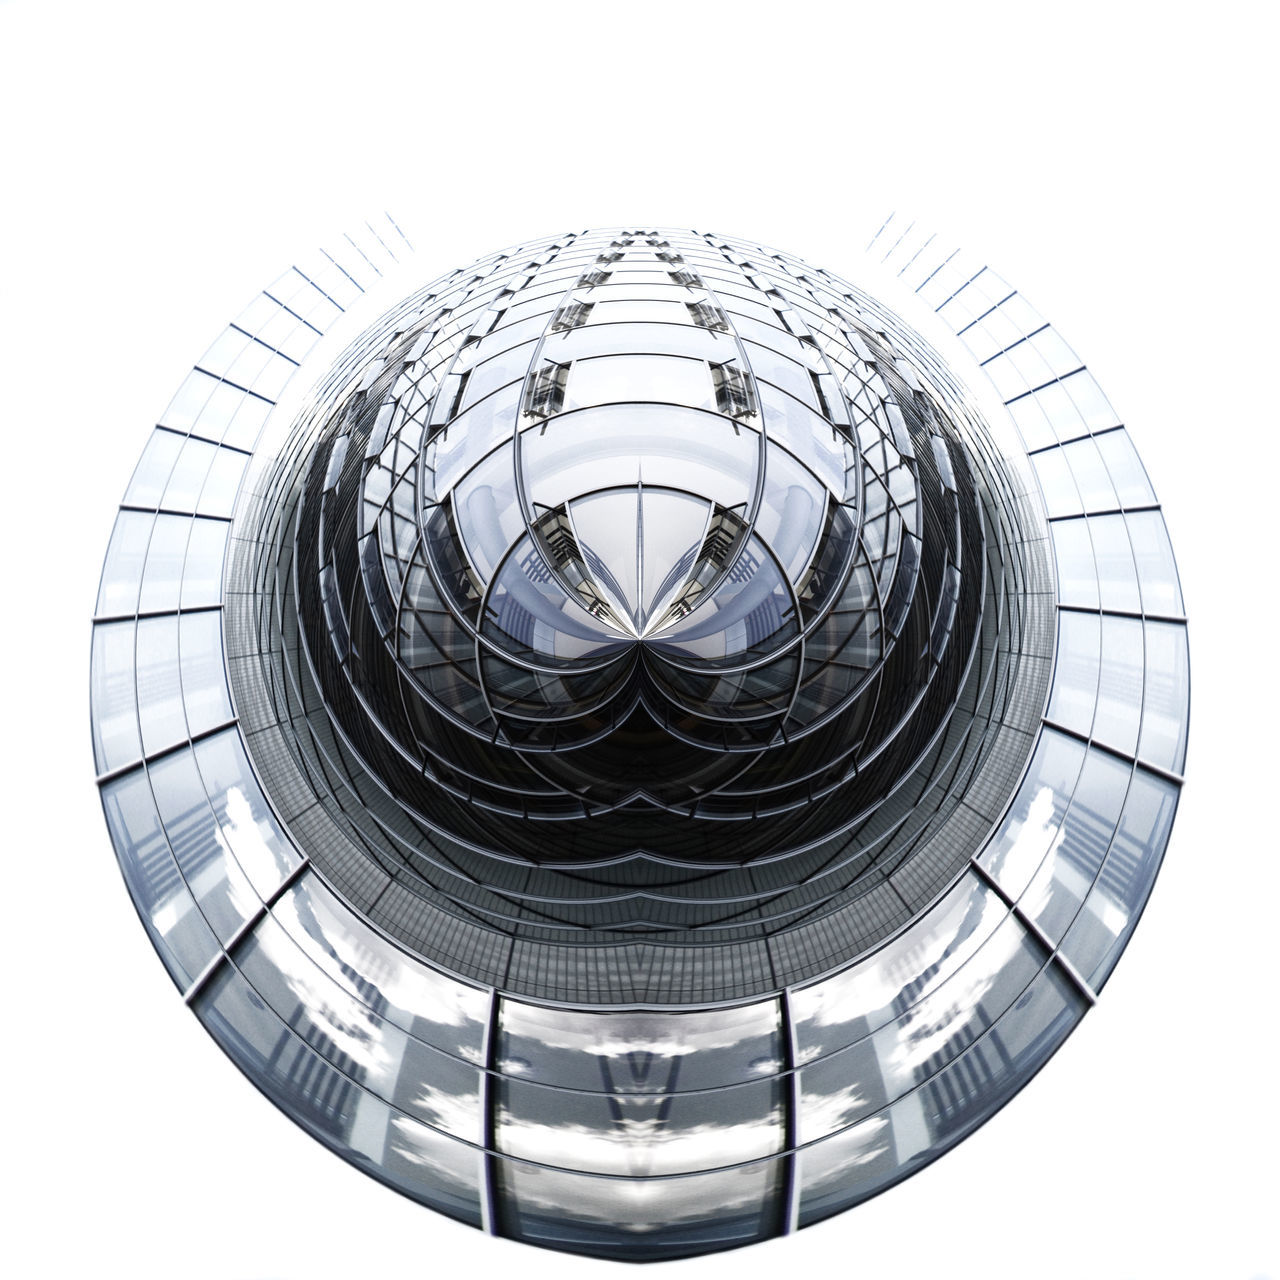 Little Planet Of Modern Glass Building In City